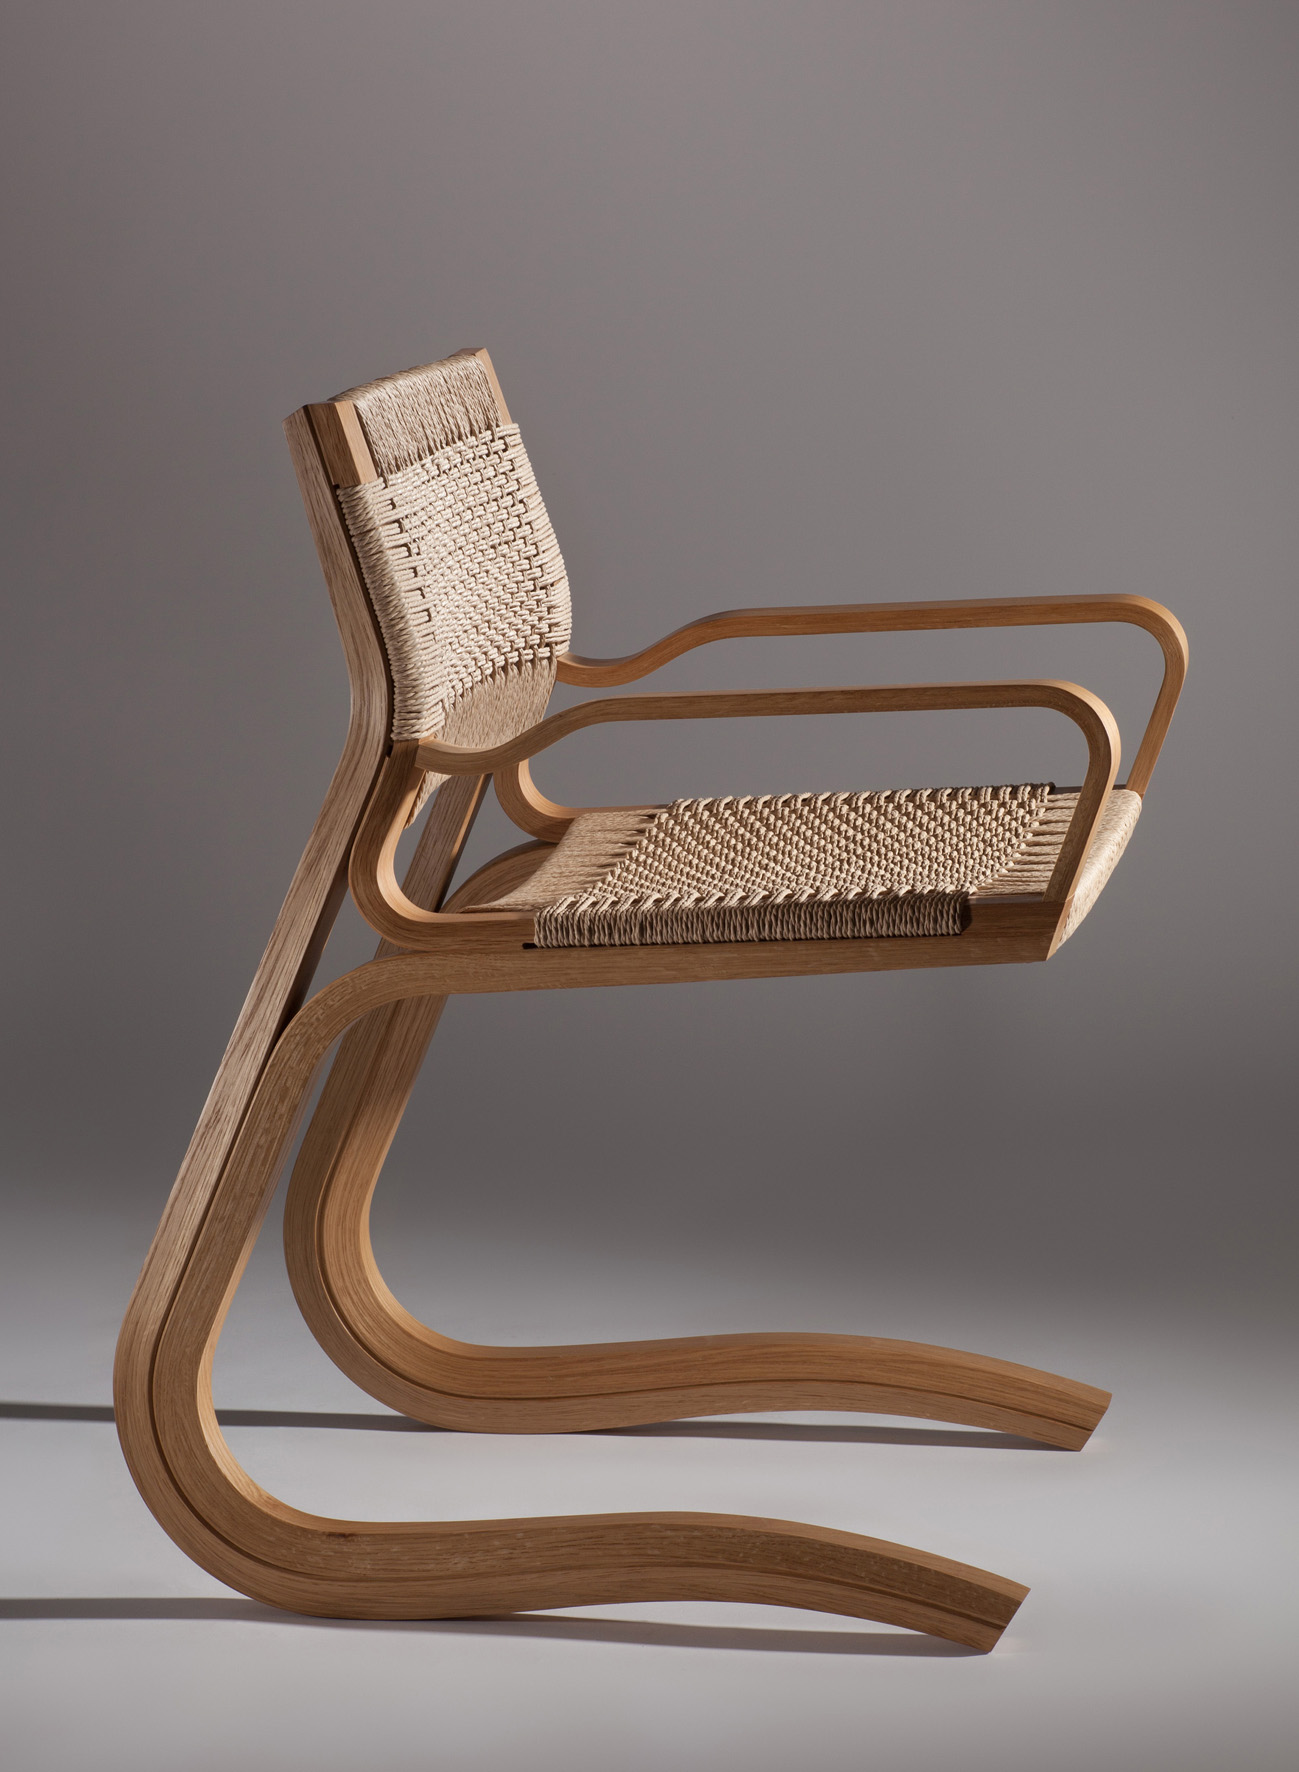 Stephen O'Briain, FUSION II Carver, oak with Danish cord woven seat, H 82 x D 67 x W 53cm,€1,800 (can be ordered with a split cane seat)